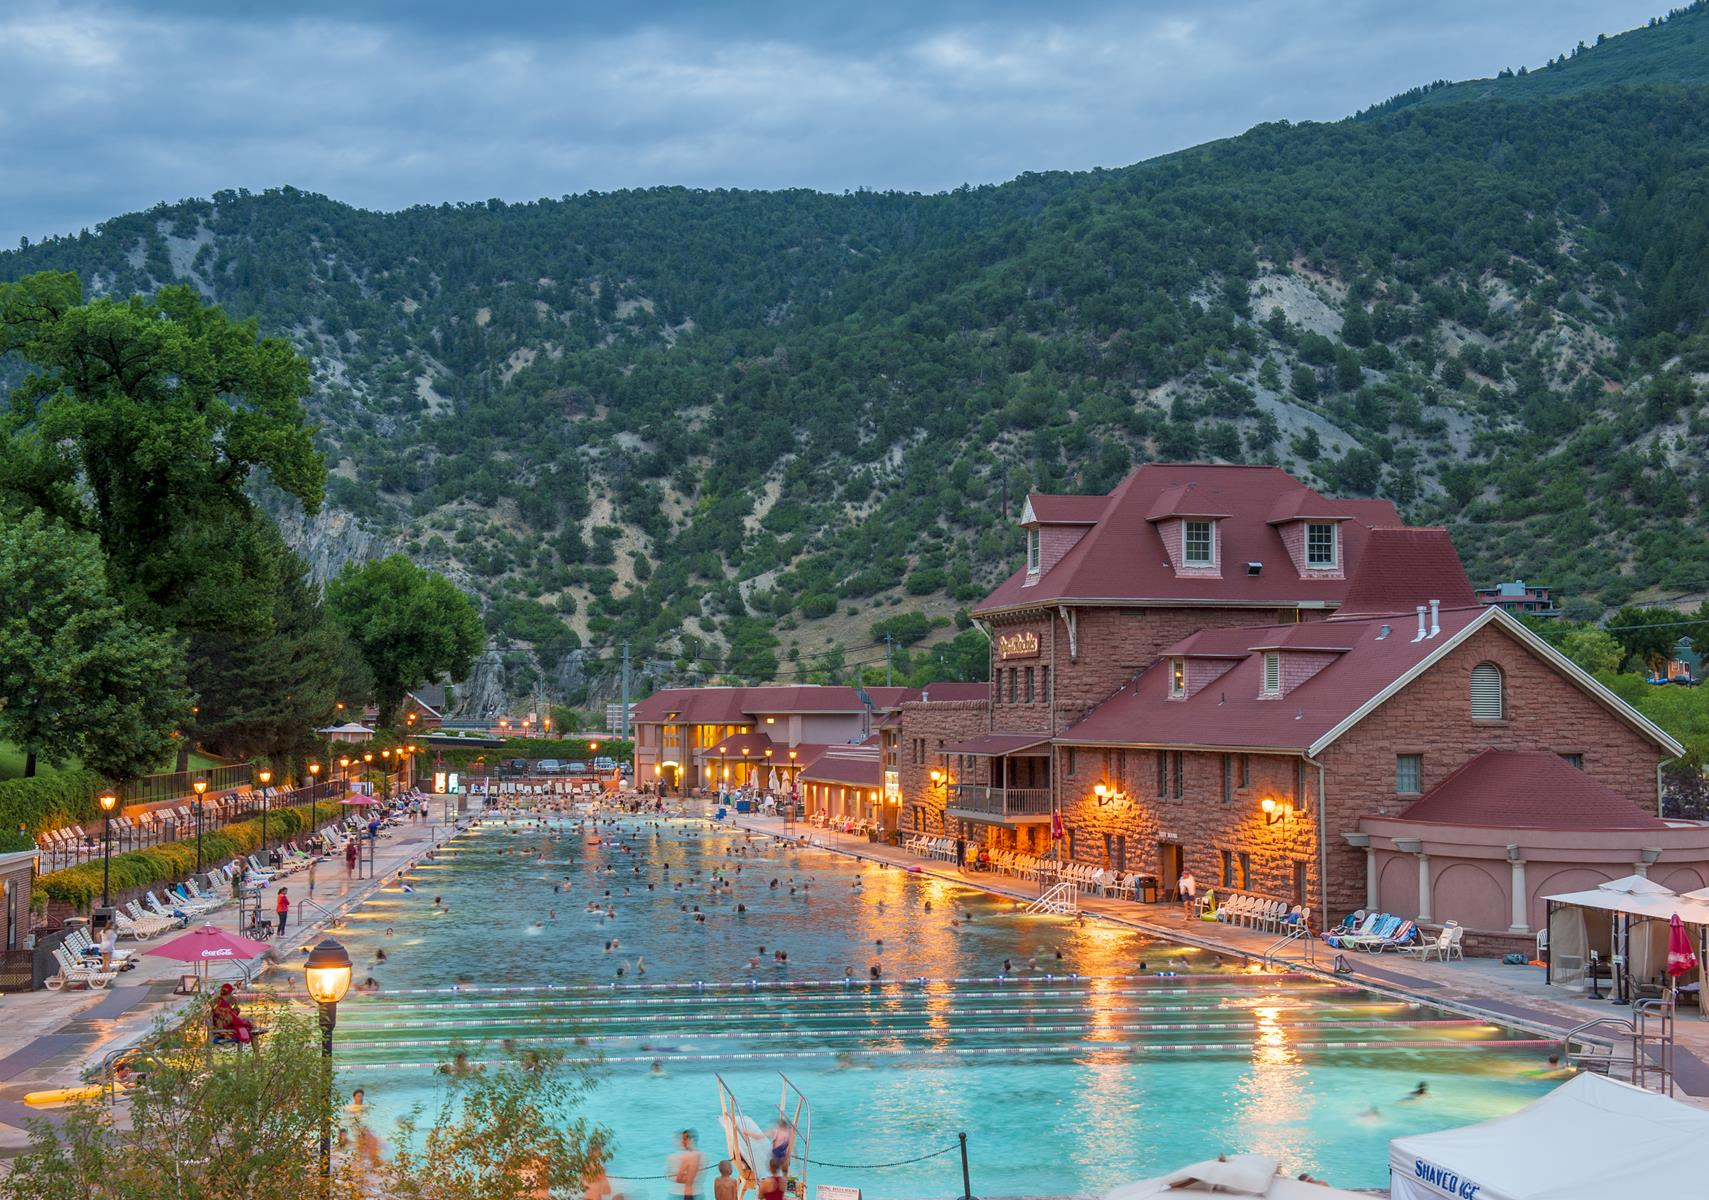 The Best 19 Hot Springs in Western Colorado